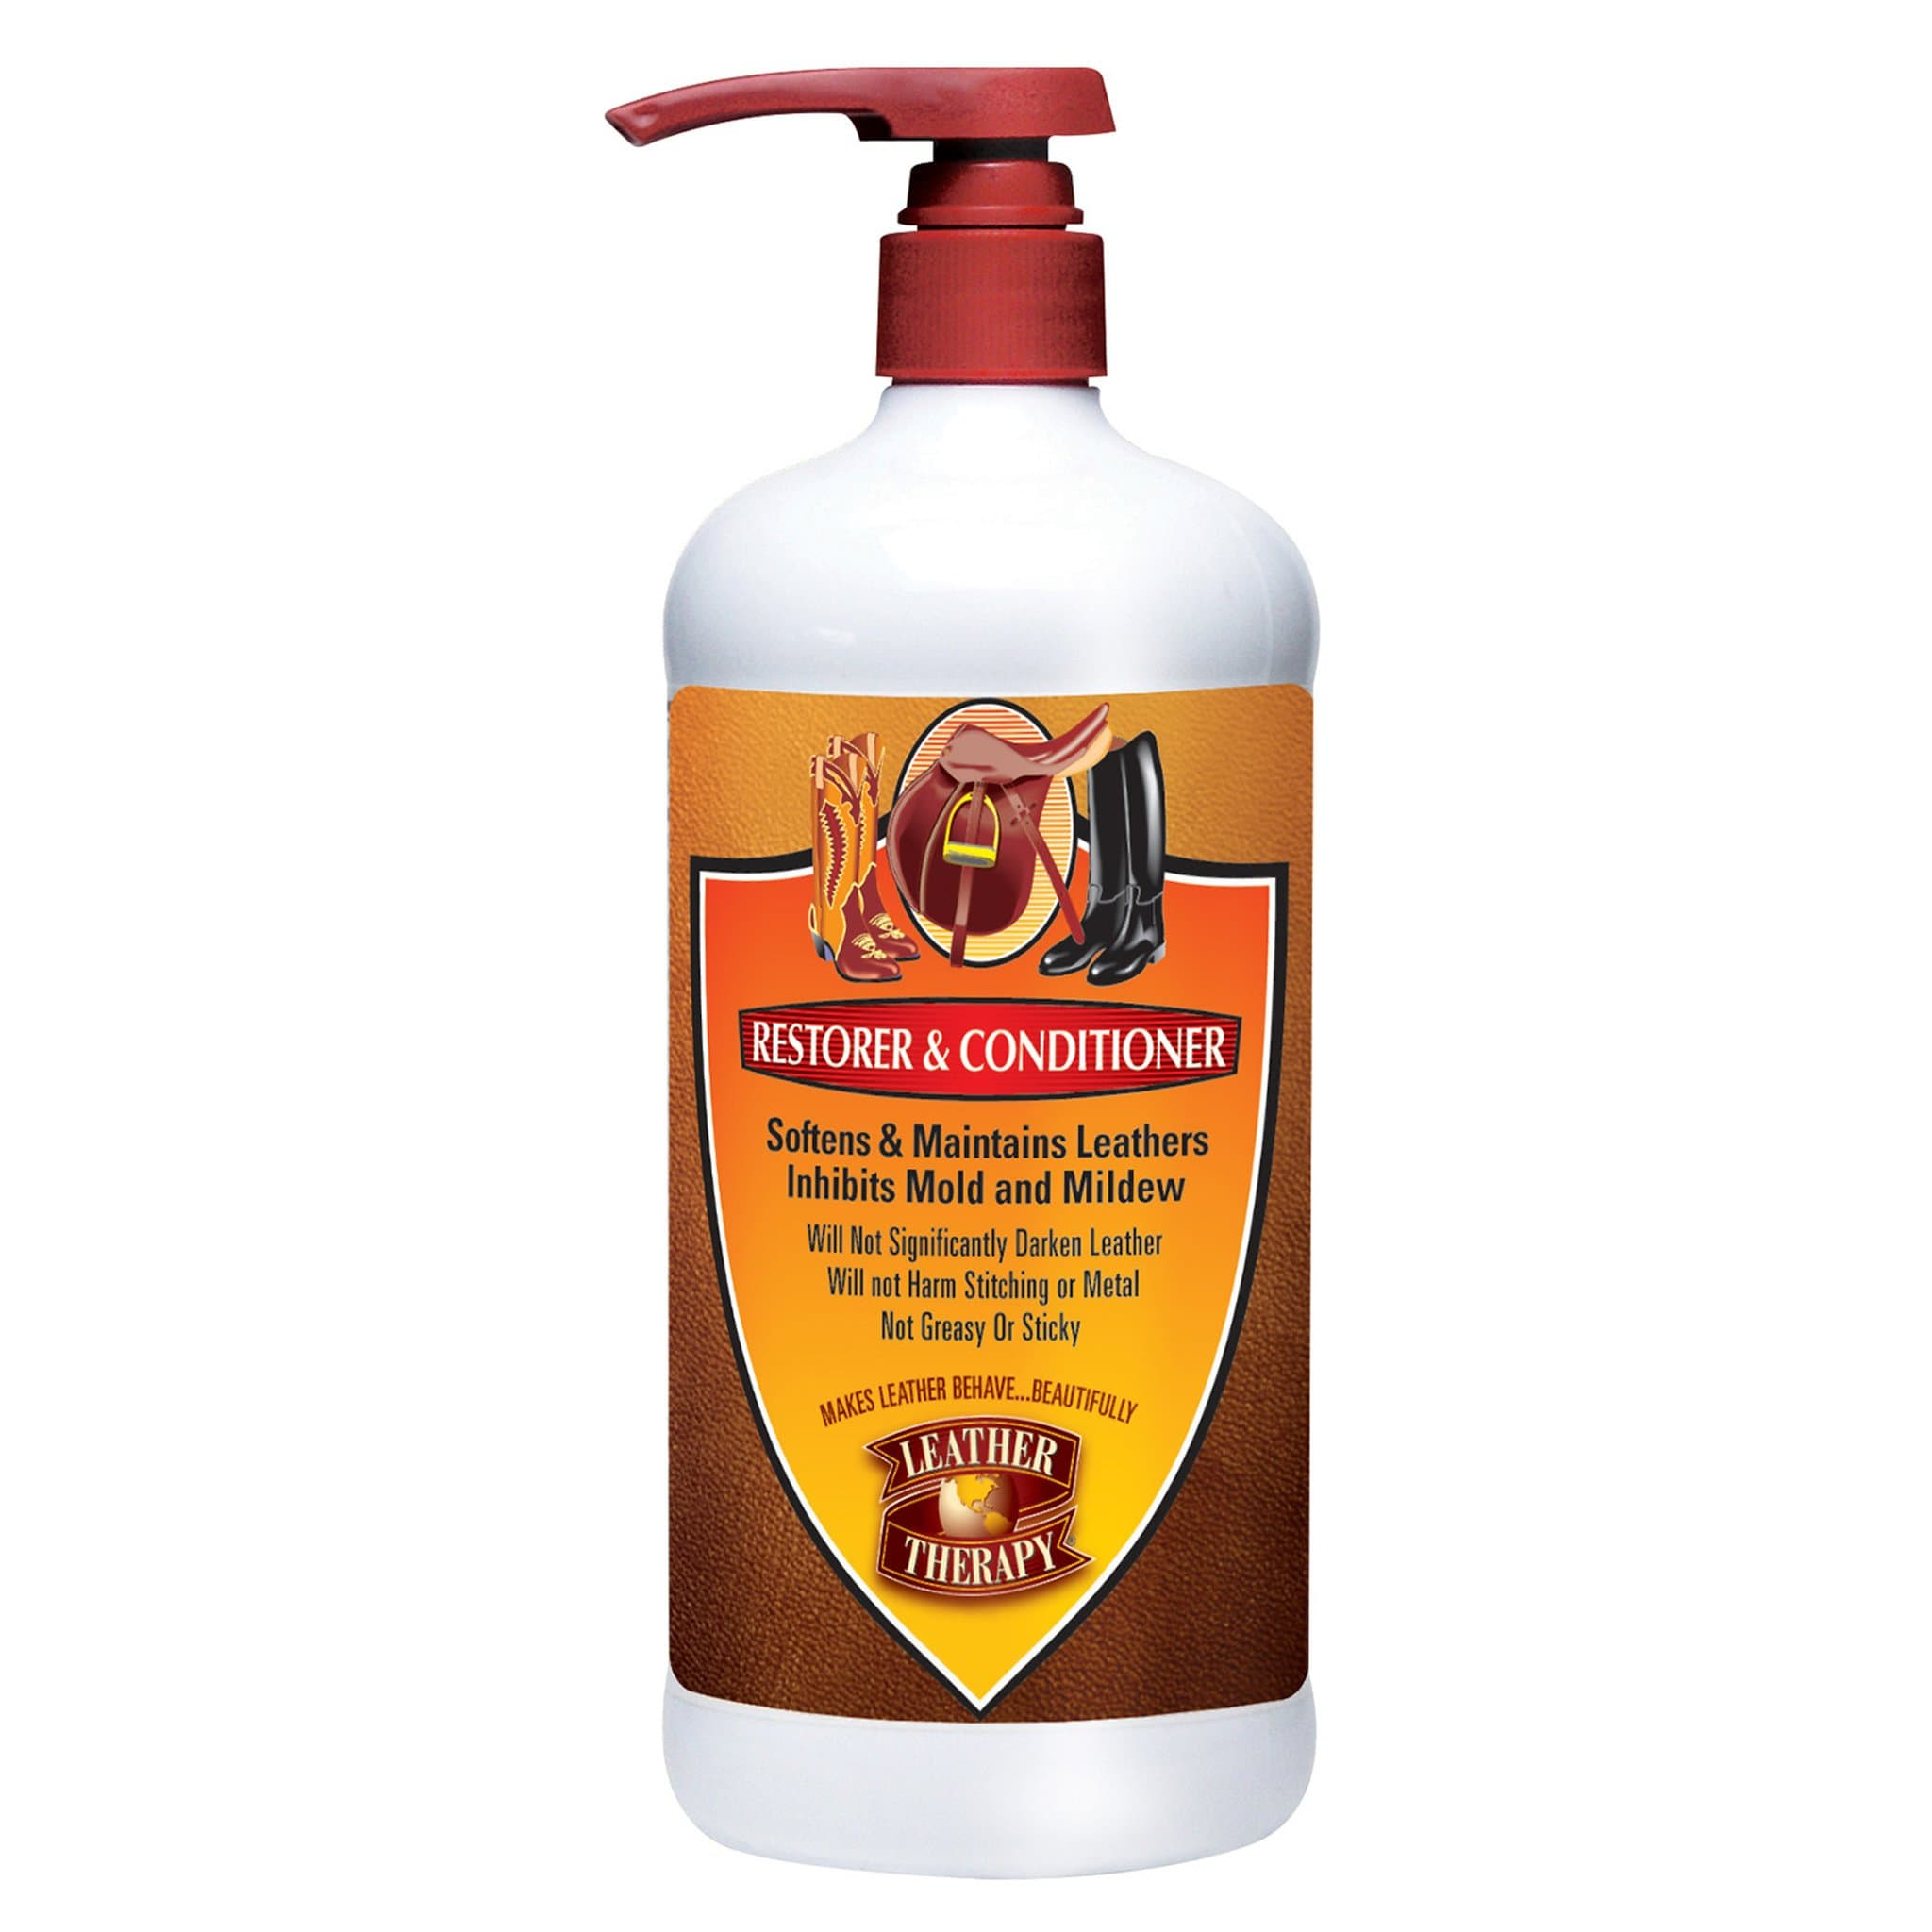 Absorbine Leather Therapy Restorer and Conditioner 473ML ABS0500.